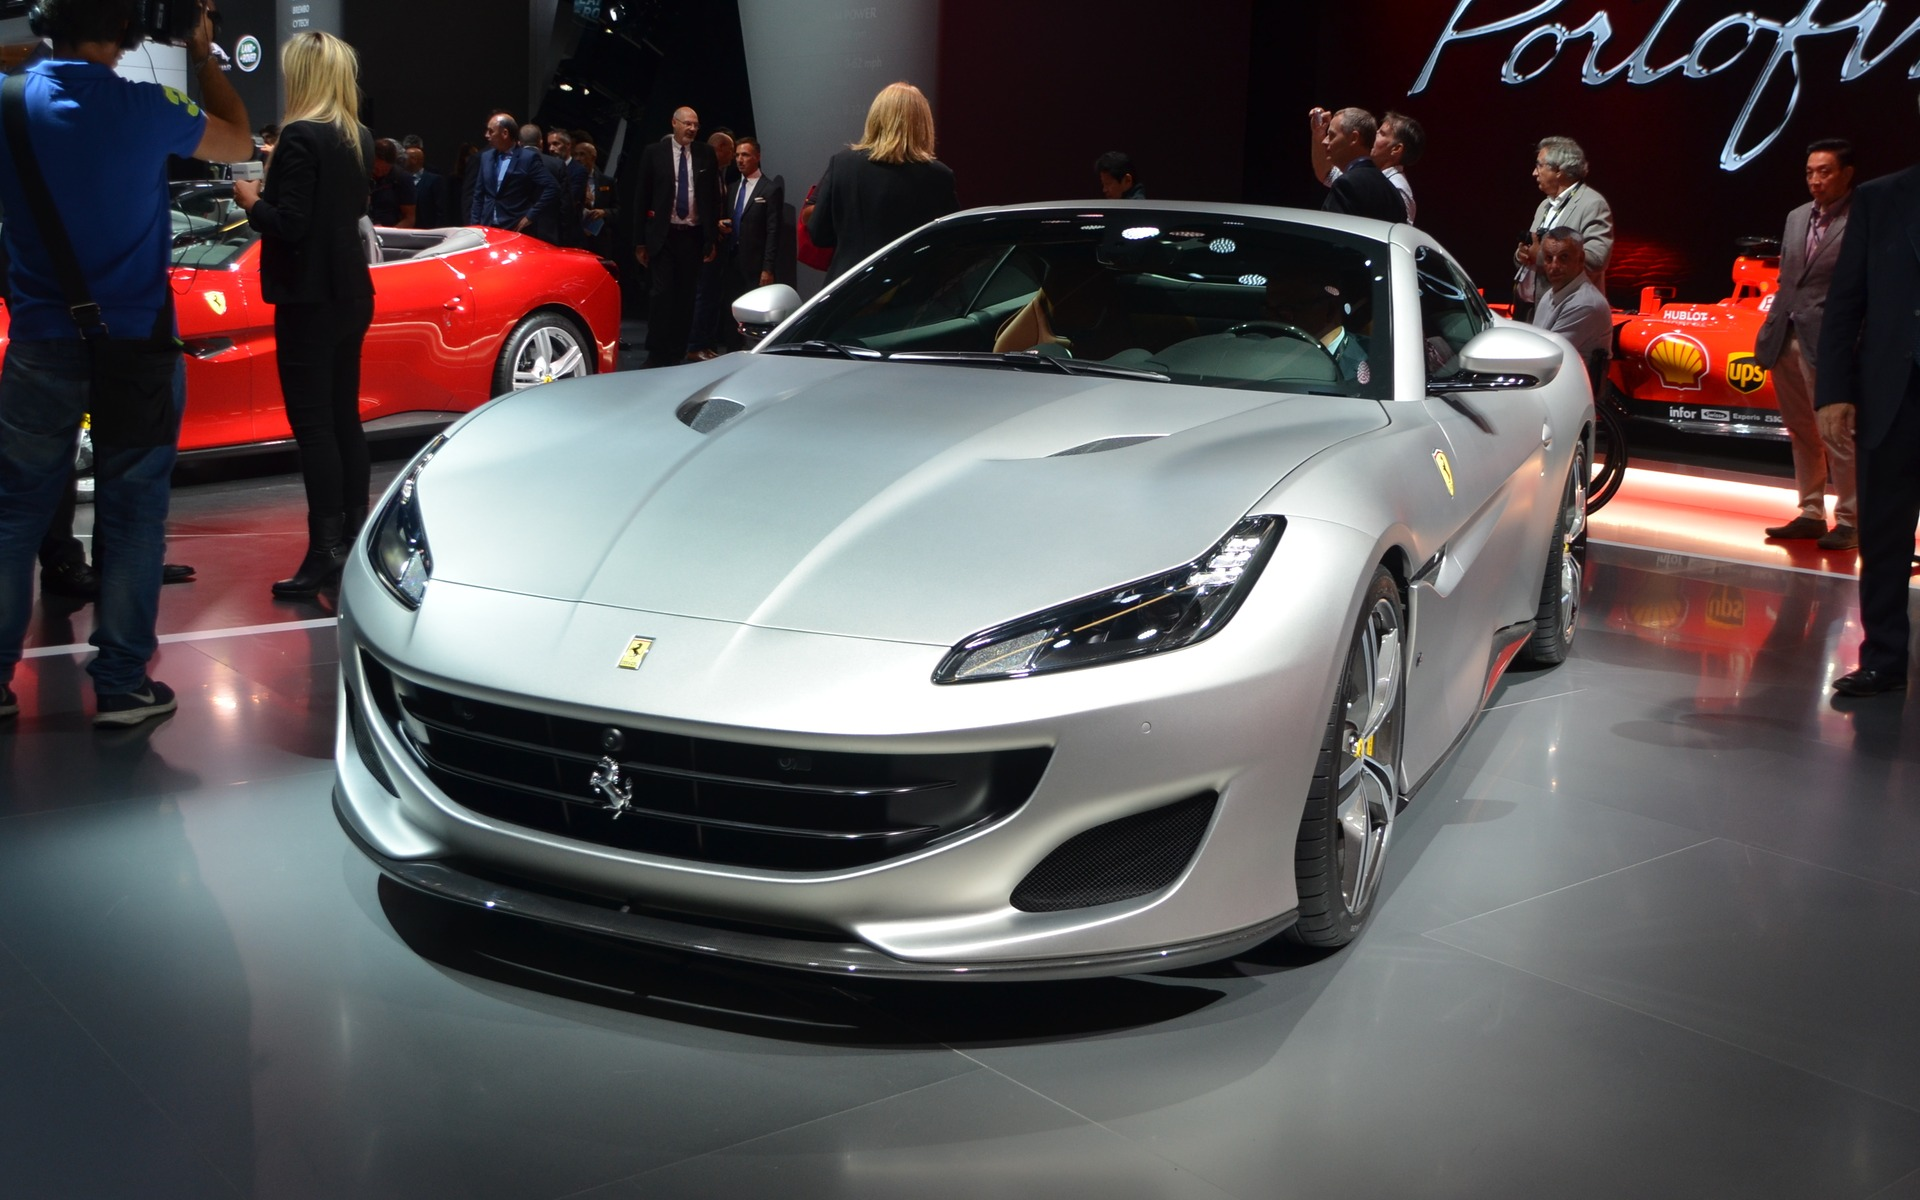 ferrari portofino 2018 de l italie l ontario en passant par l allemagne guide auto. Black Bedroom Furniture Sets. Home Design Ideas